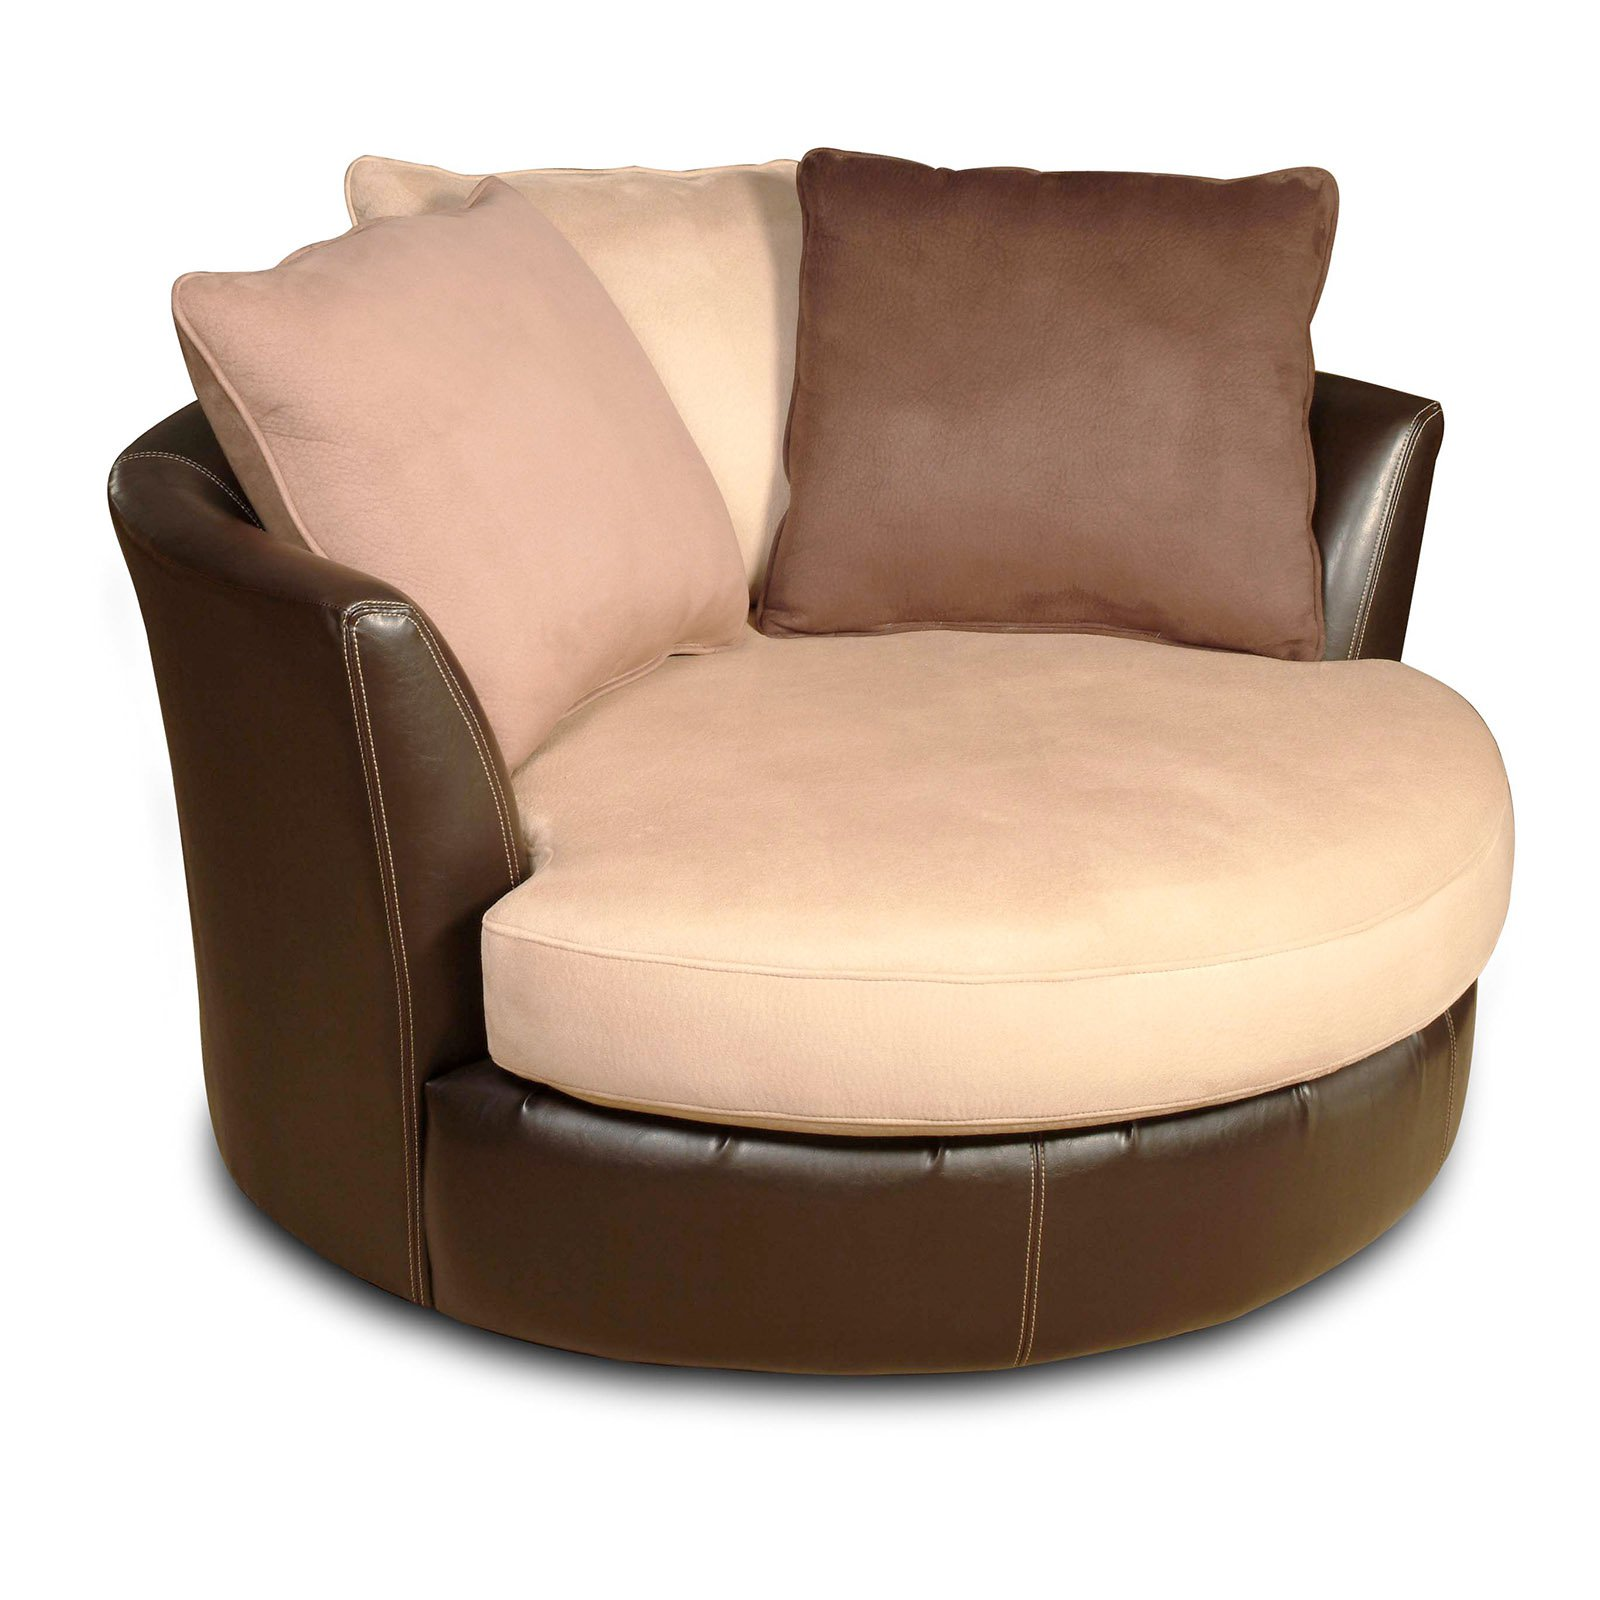 Chelsea Home Furniture Newport Swivel Chair Laredo Mocha